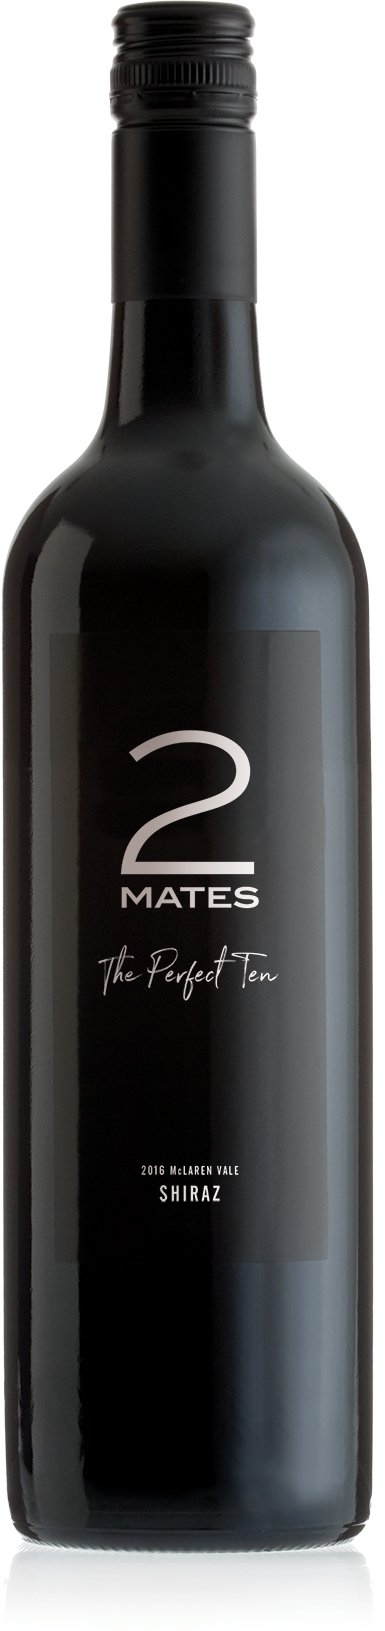 2016 The Perfect Ten Shiraz